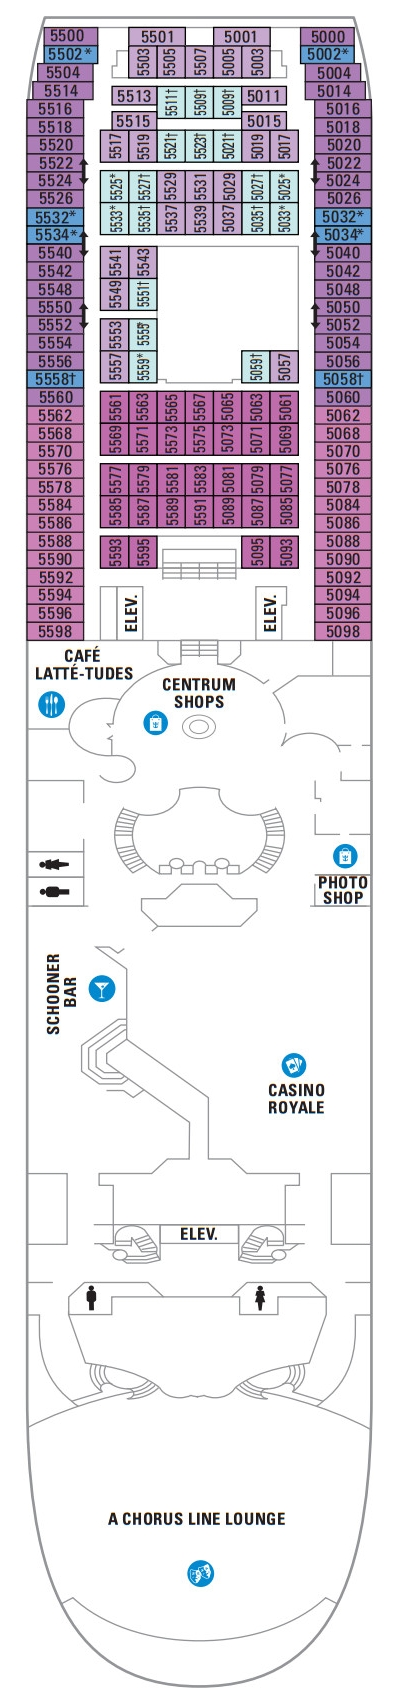 Majesty Of The Seas Deck 5 layout